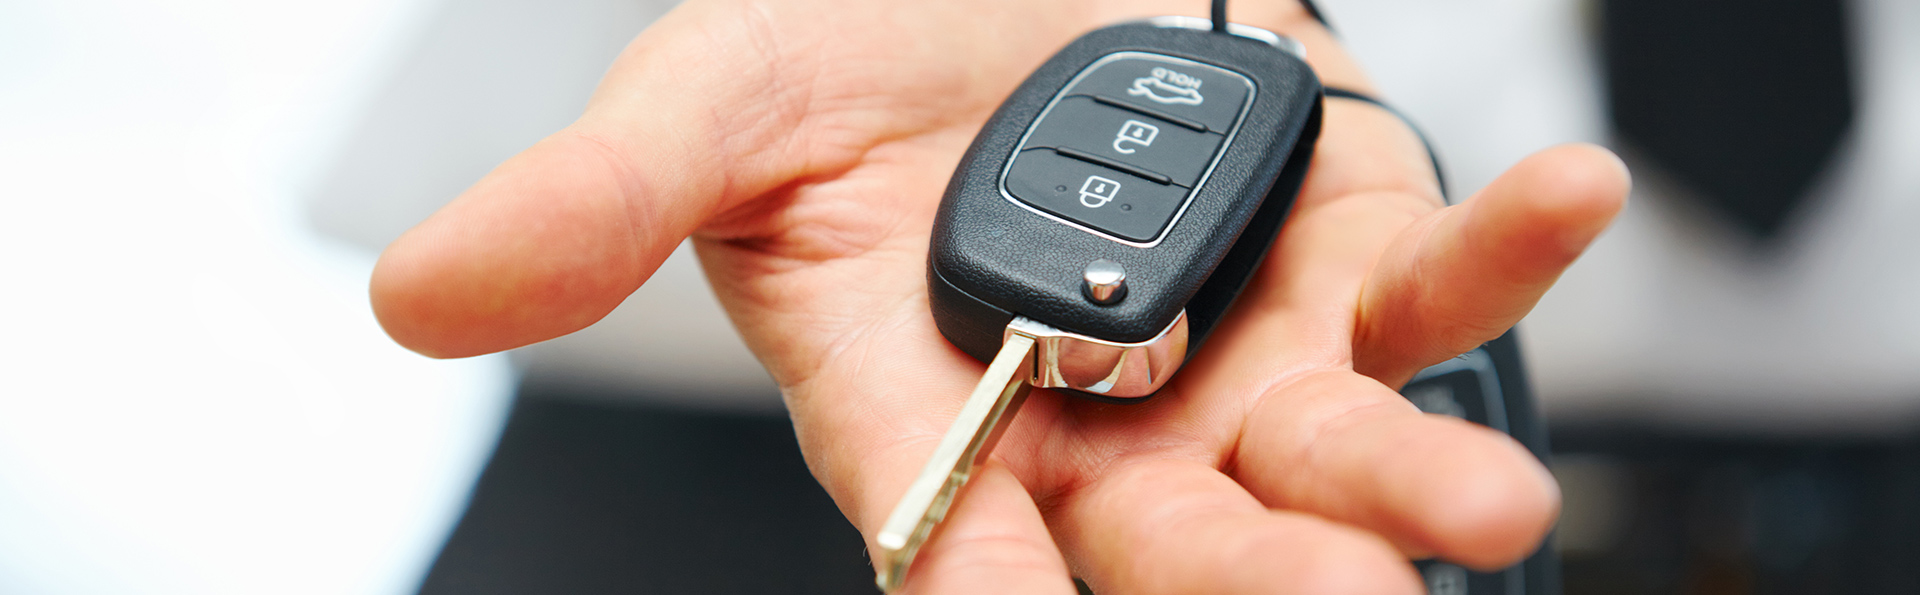 Tips when buying a new or used car